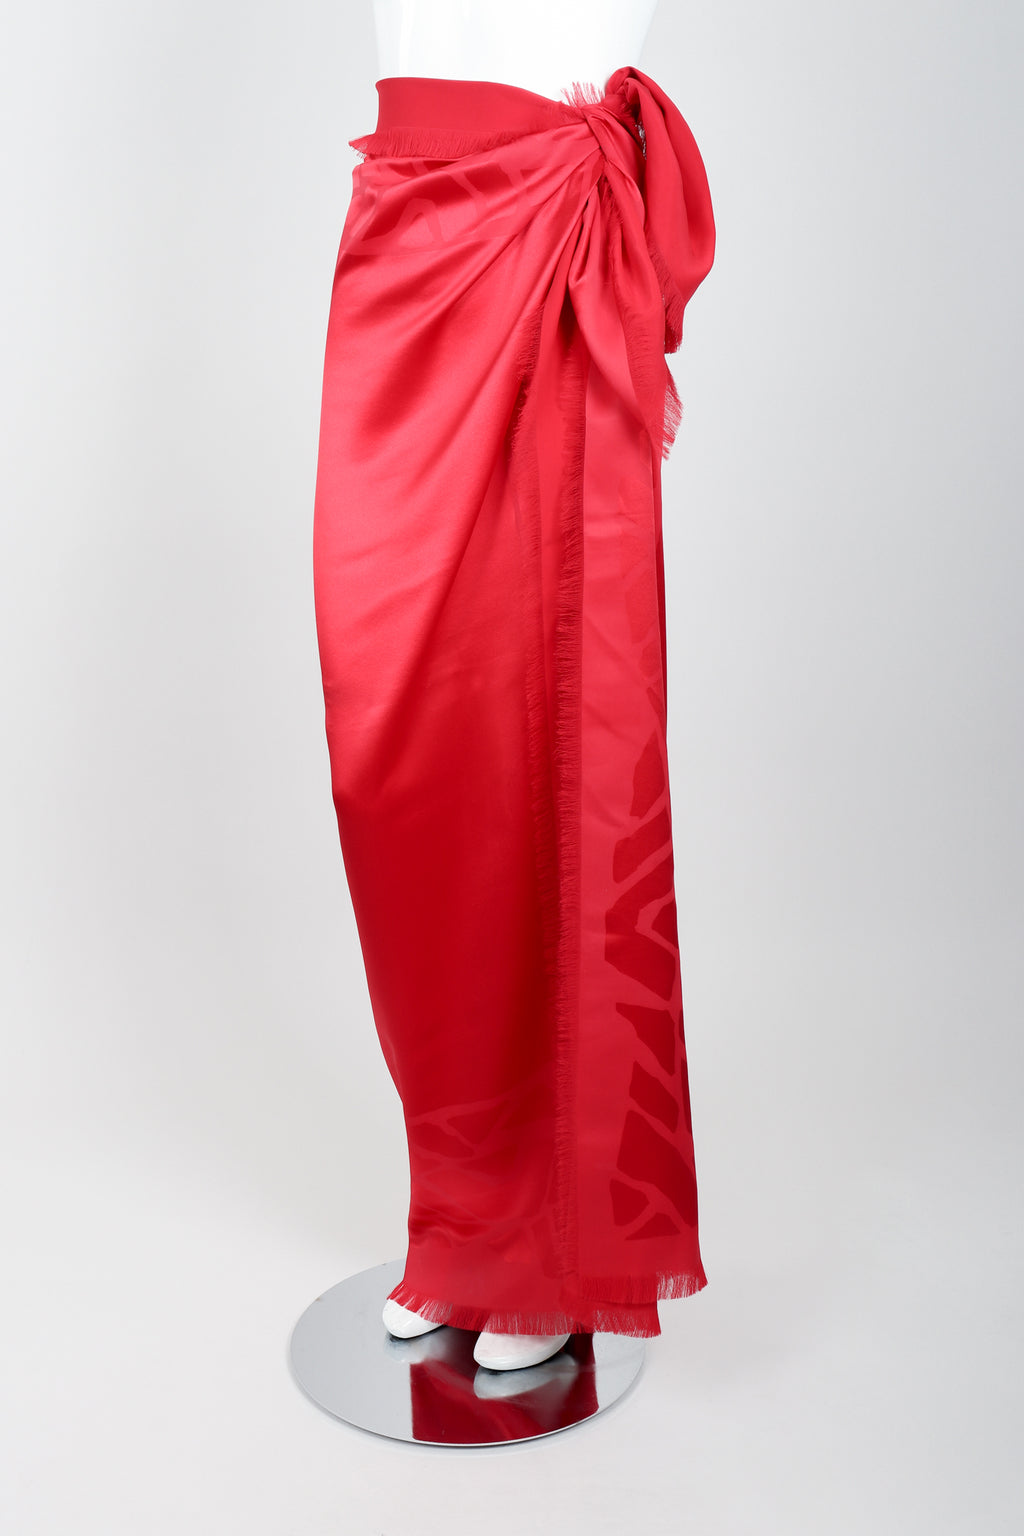 Vintage YSL Yves Saint Laurent Rive Gauche Oversized Red Silk Scarf on mannequin at Recess